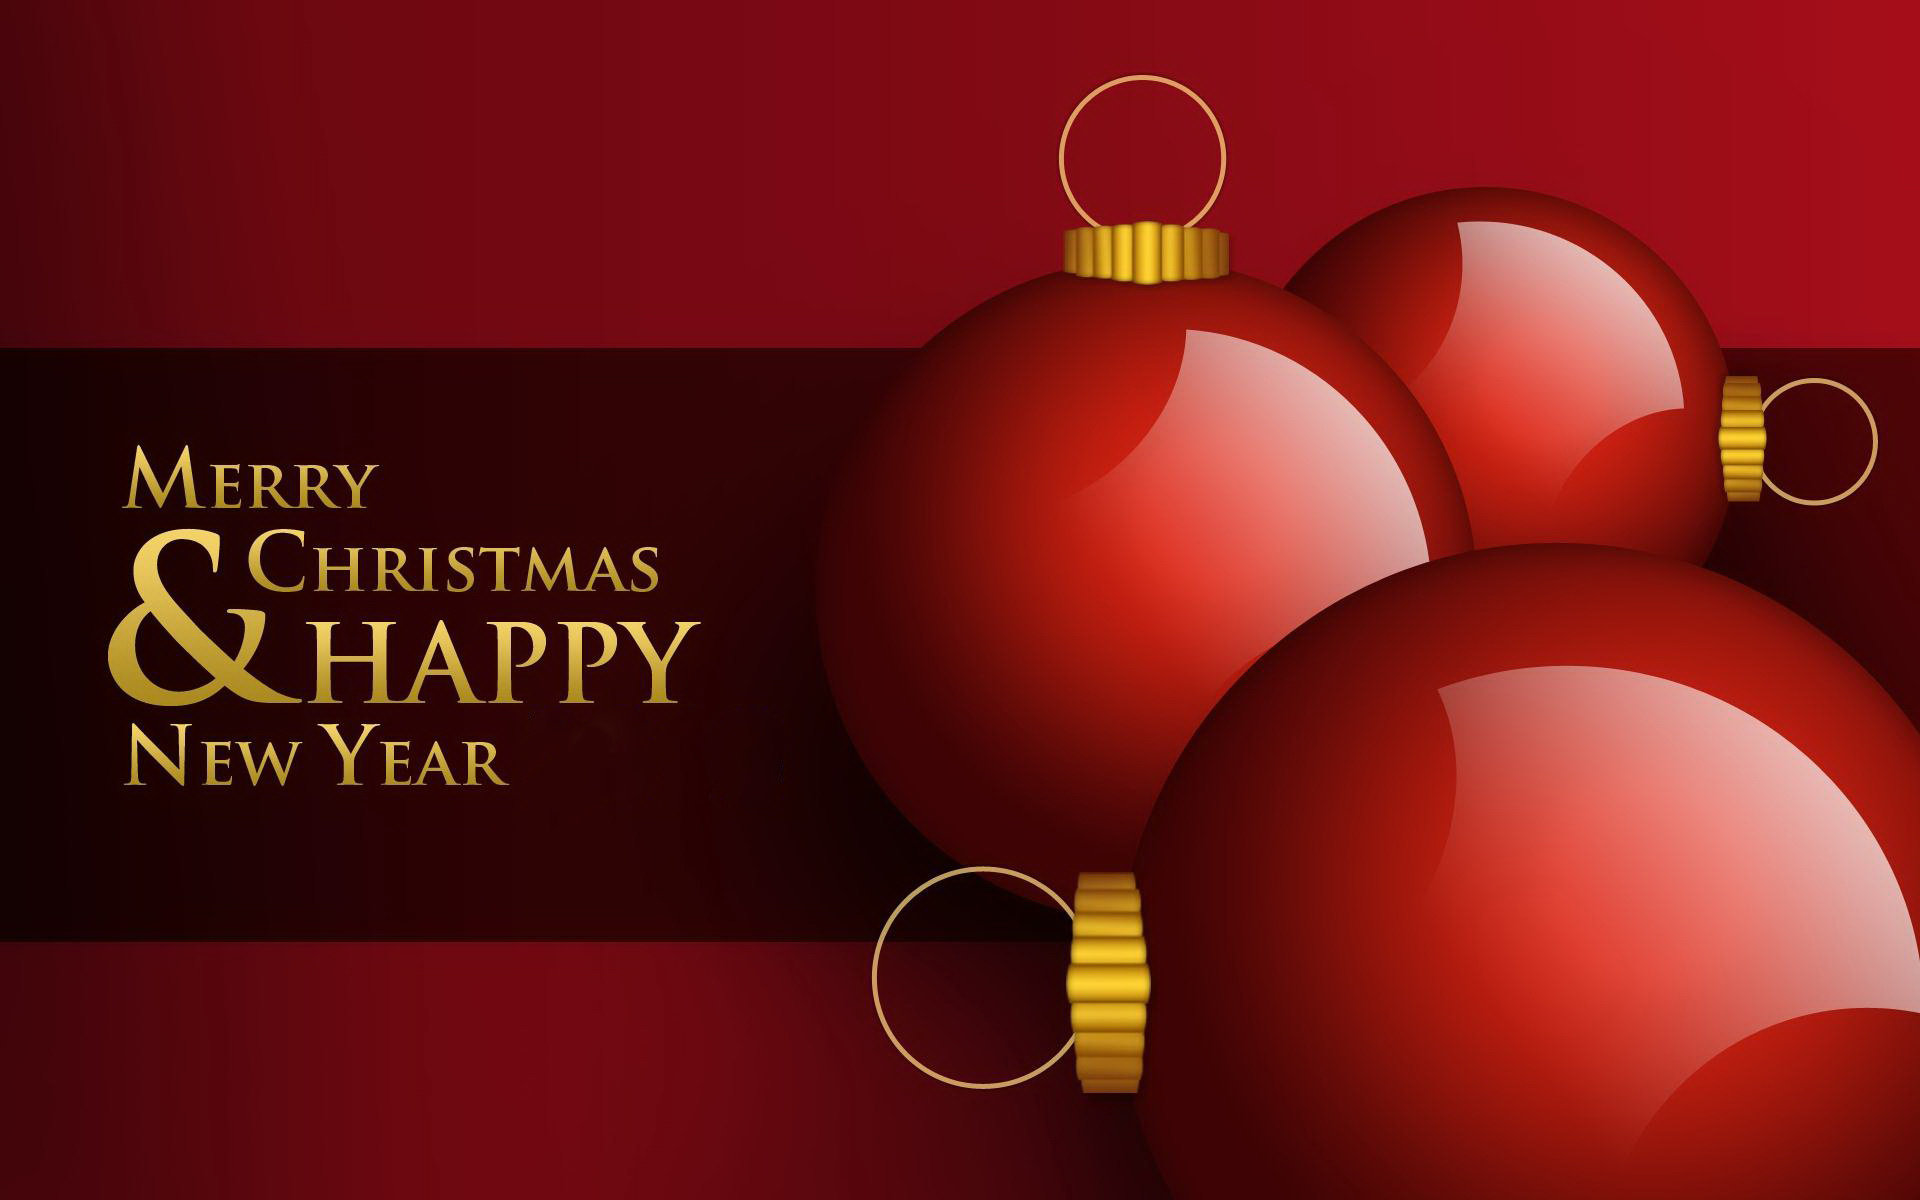 Merry Christmas And Happy New Years 2015 Wallpaper